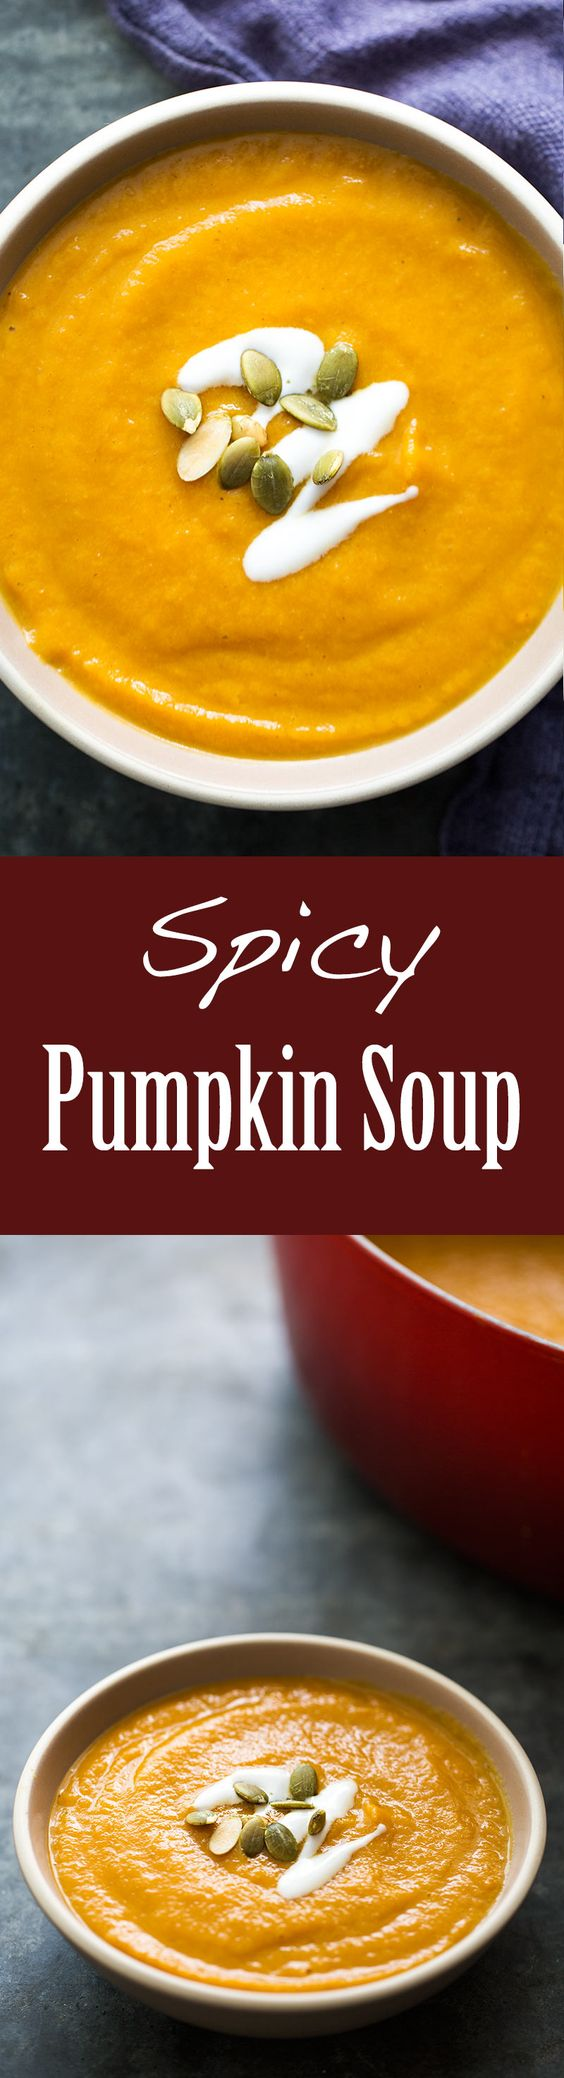 Spicy Pumpkin Soup | Recipe | Pumpkin Soup, Spicy and Ginger Chicken